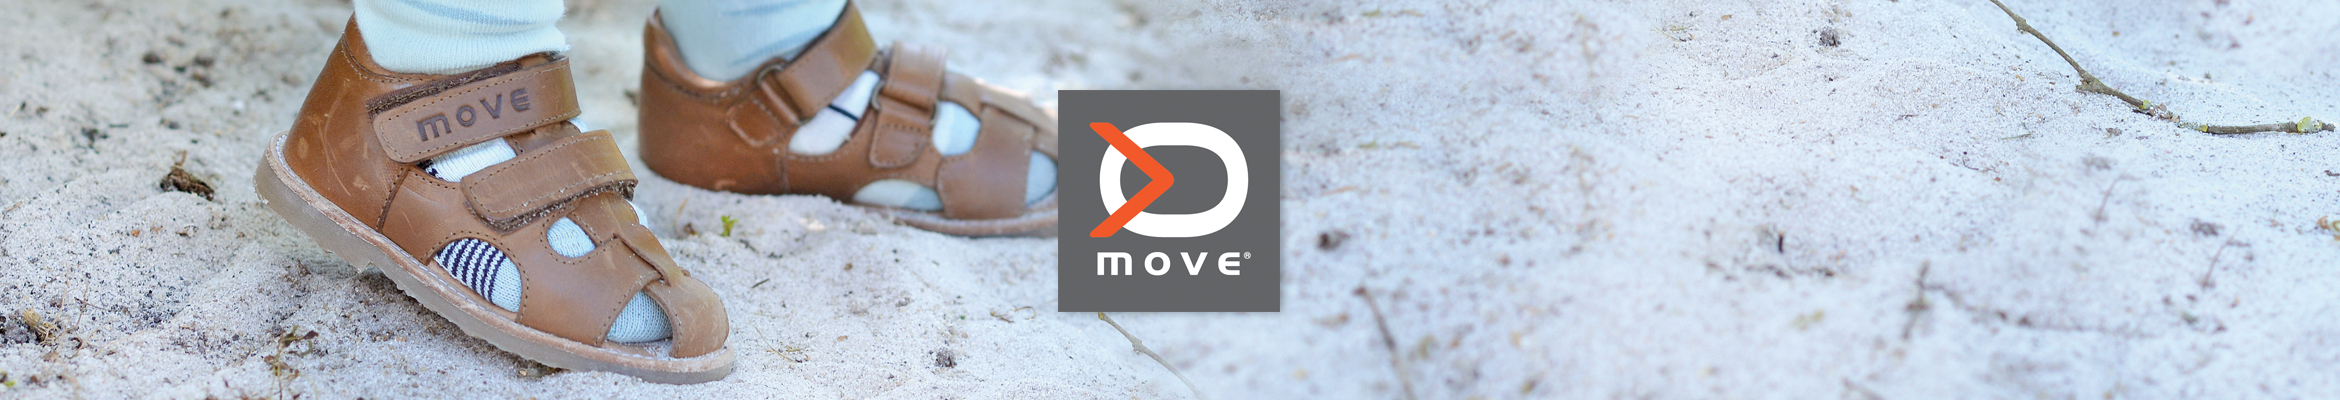 MOVE By MELTON Brandwall